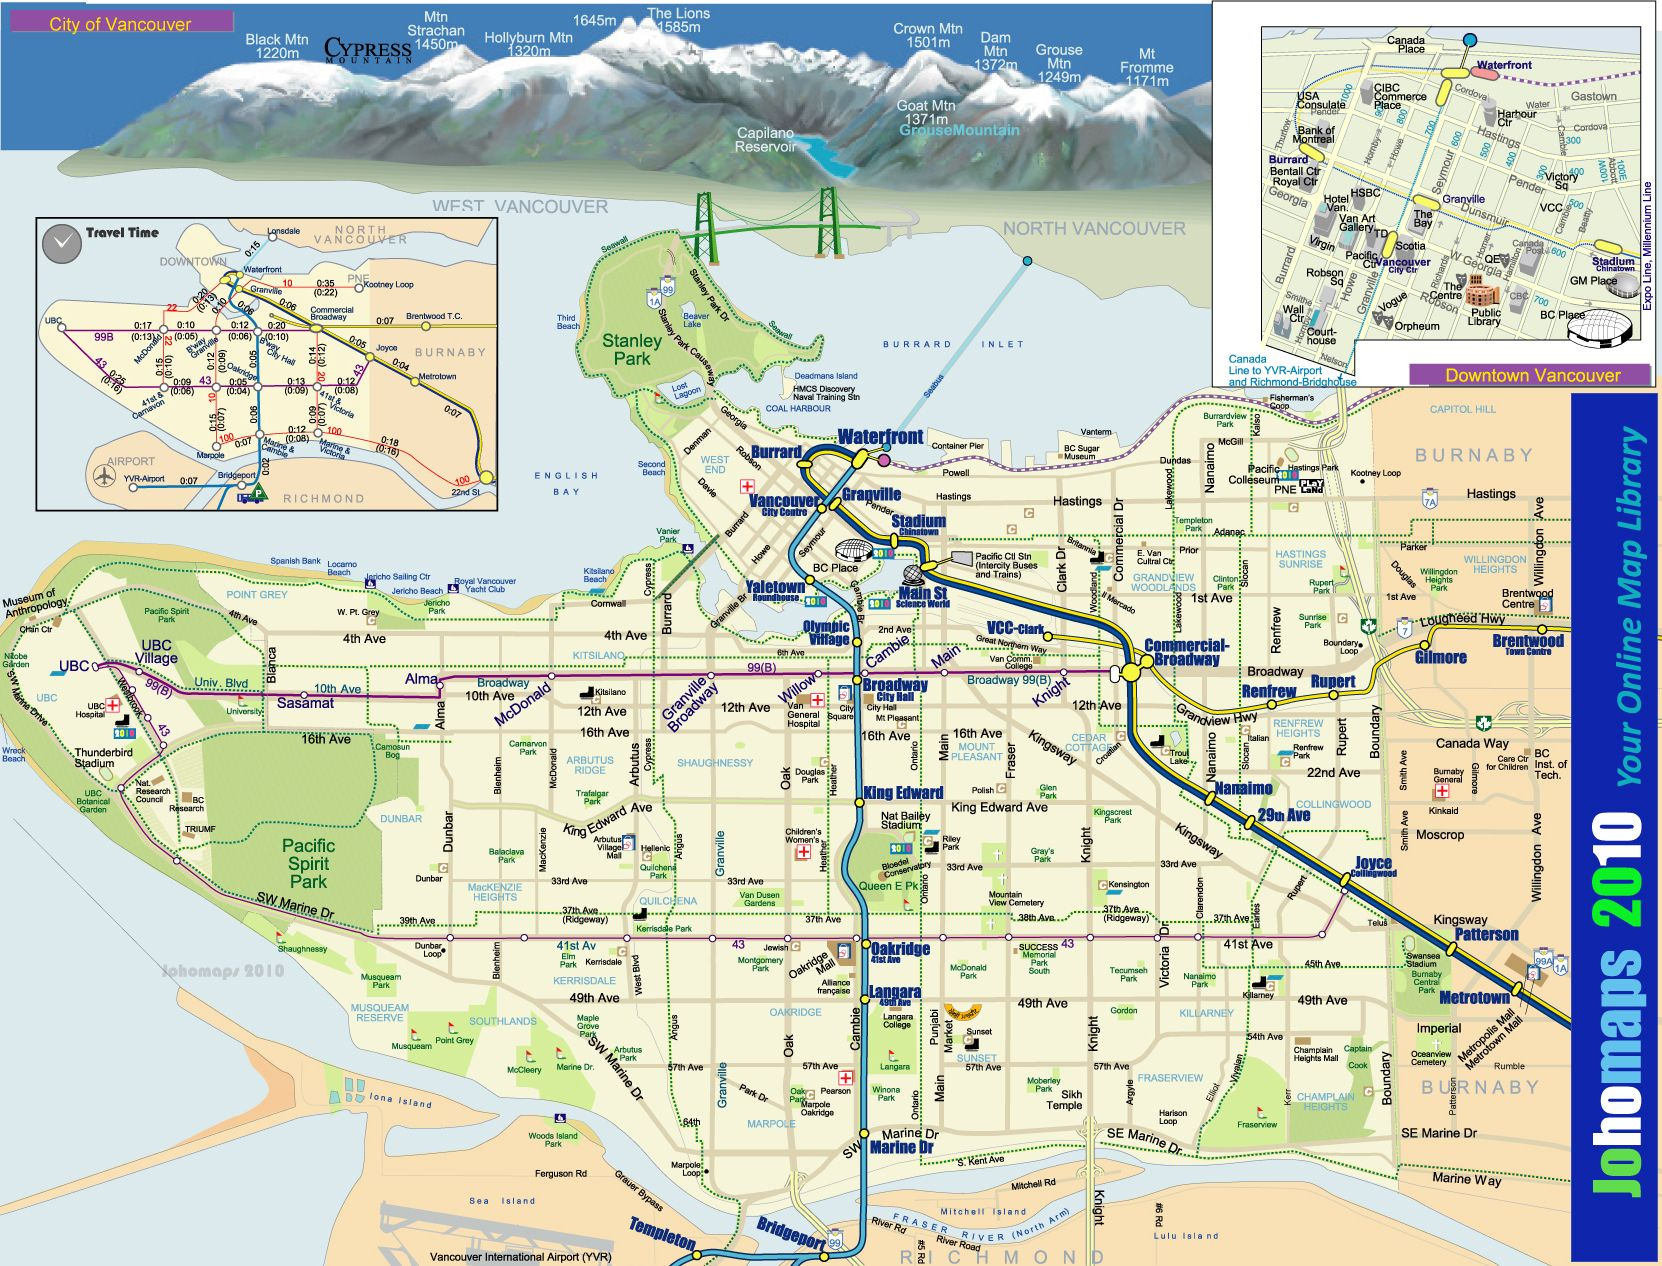 Map Of Vancouver Canada Skytrain Linking Airport To Downtown - Vancouver canada map